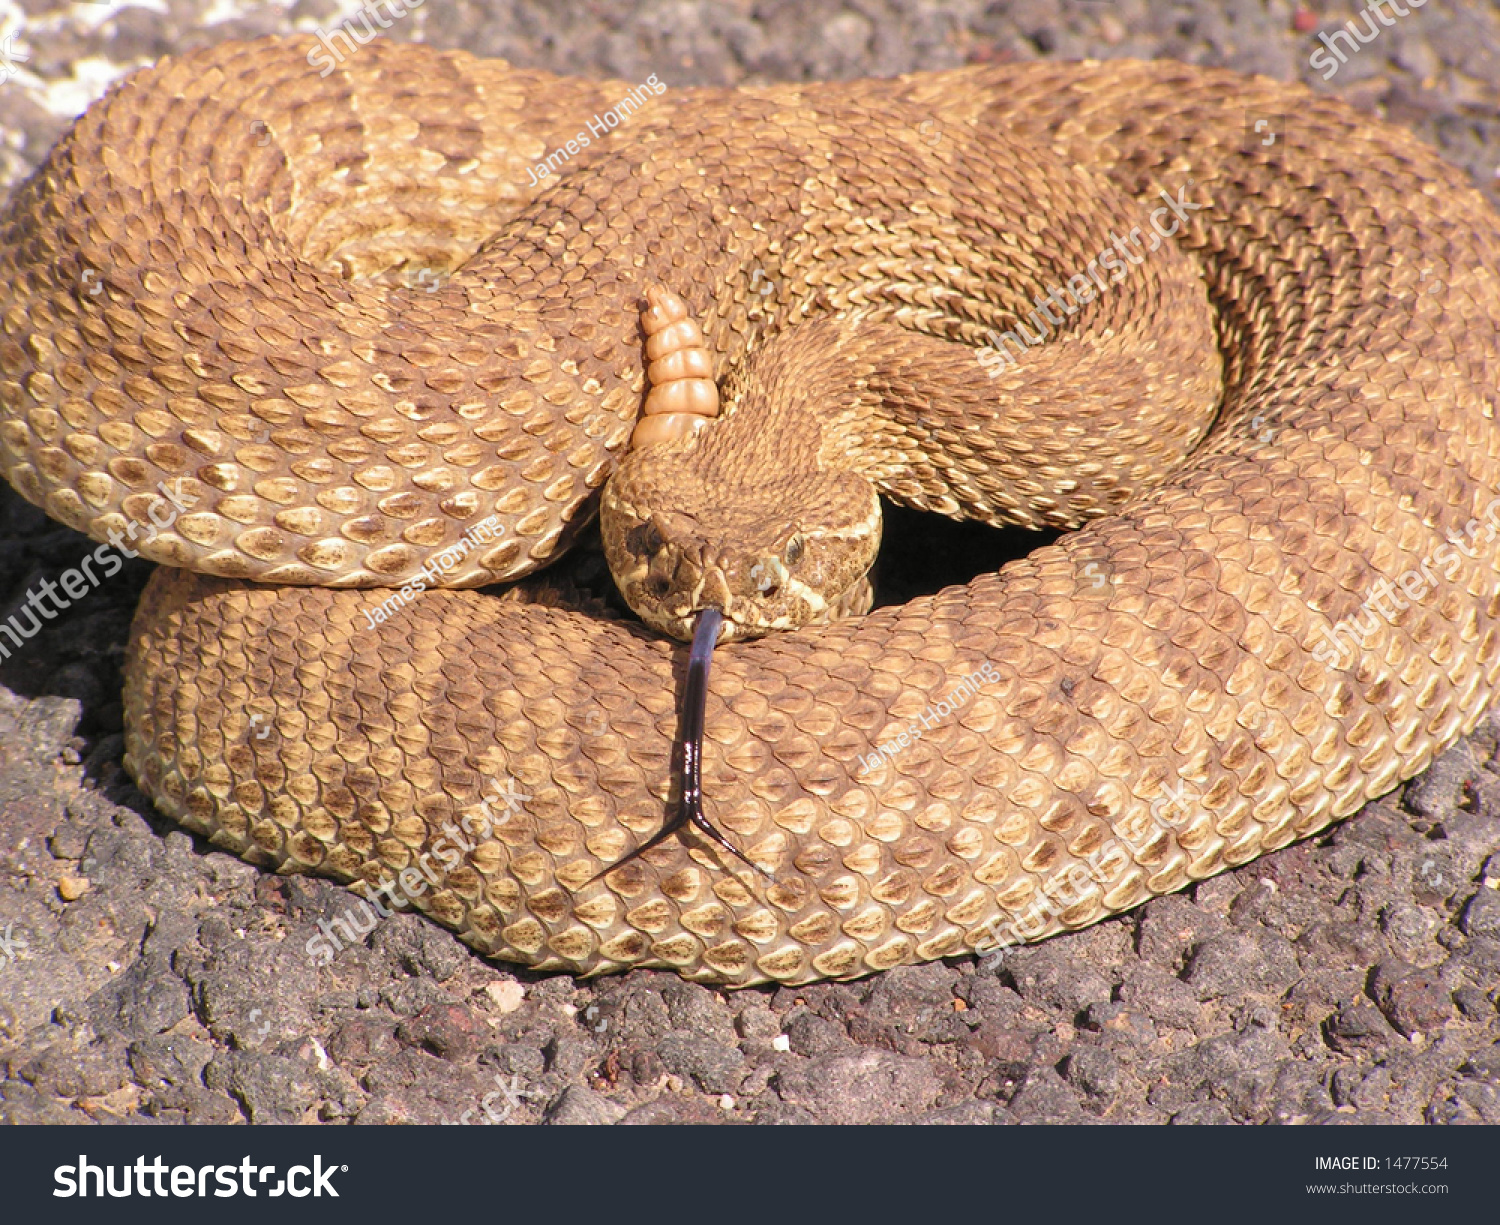 Western diamondback rattlesnake stock photo 1477554 for Western diamondback rattlesnake coloring pages